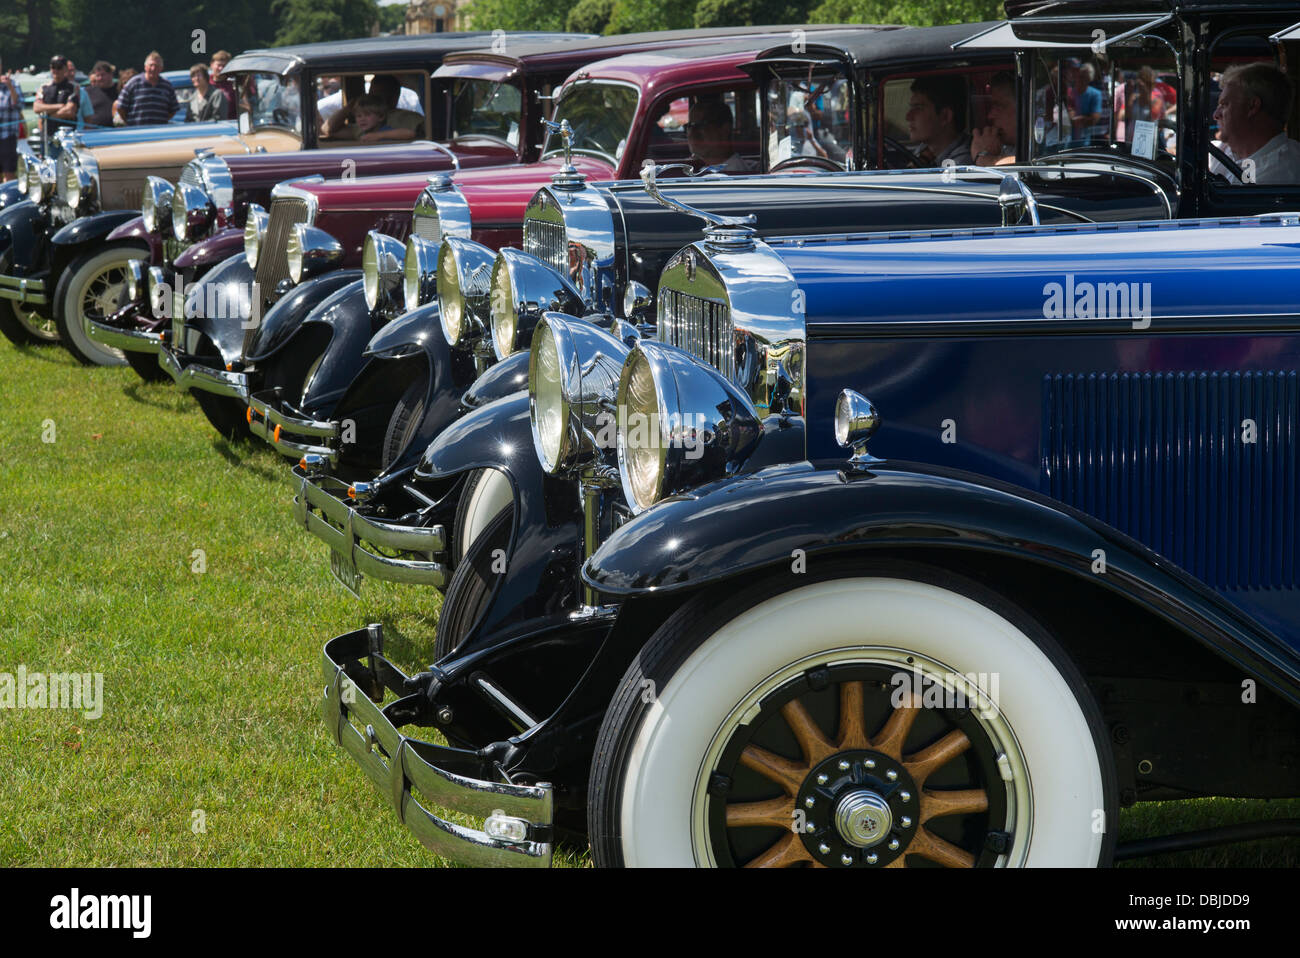 Vintage American cars at an American car show. Blenheim Palace Stock ...